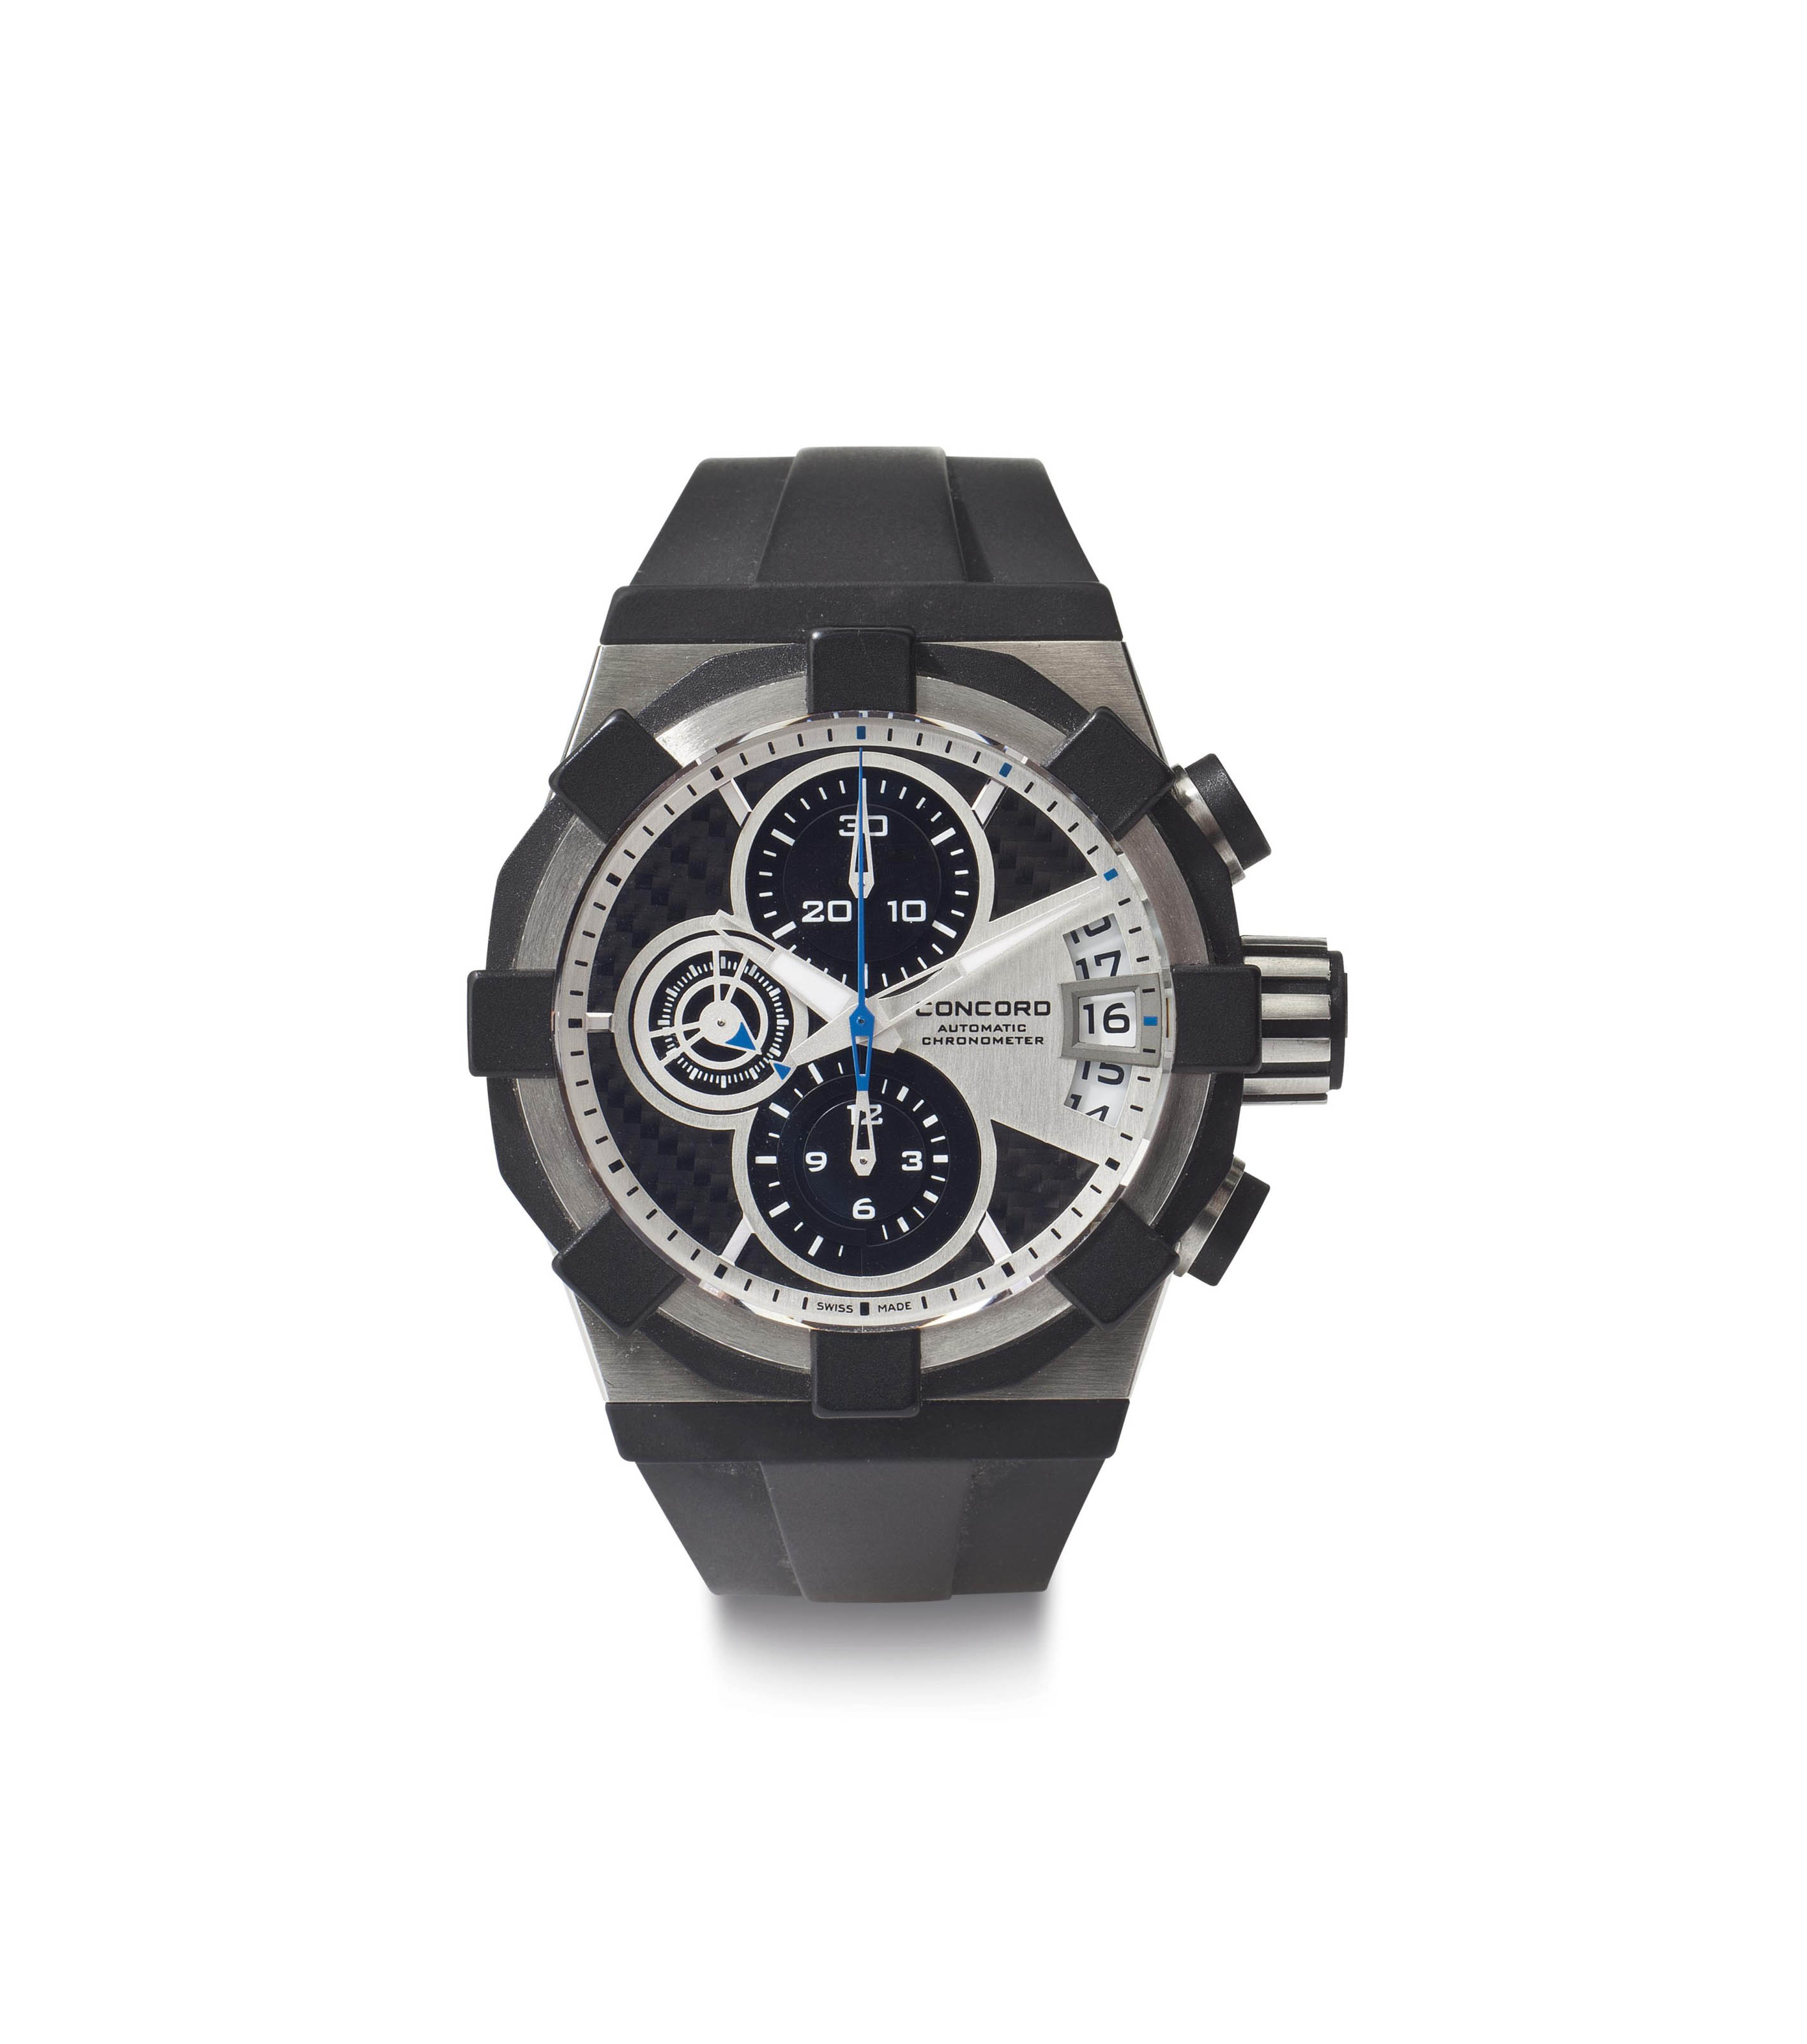 Concord. A Large Stainless Steel Chronometer Wristwatch with Chronograph and Date